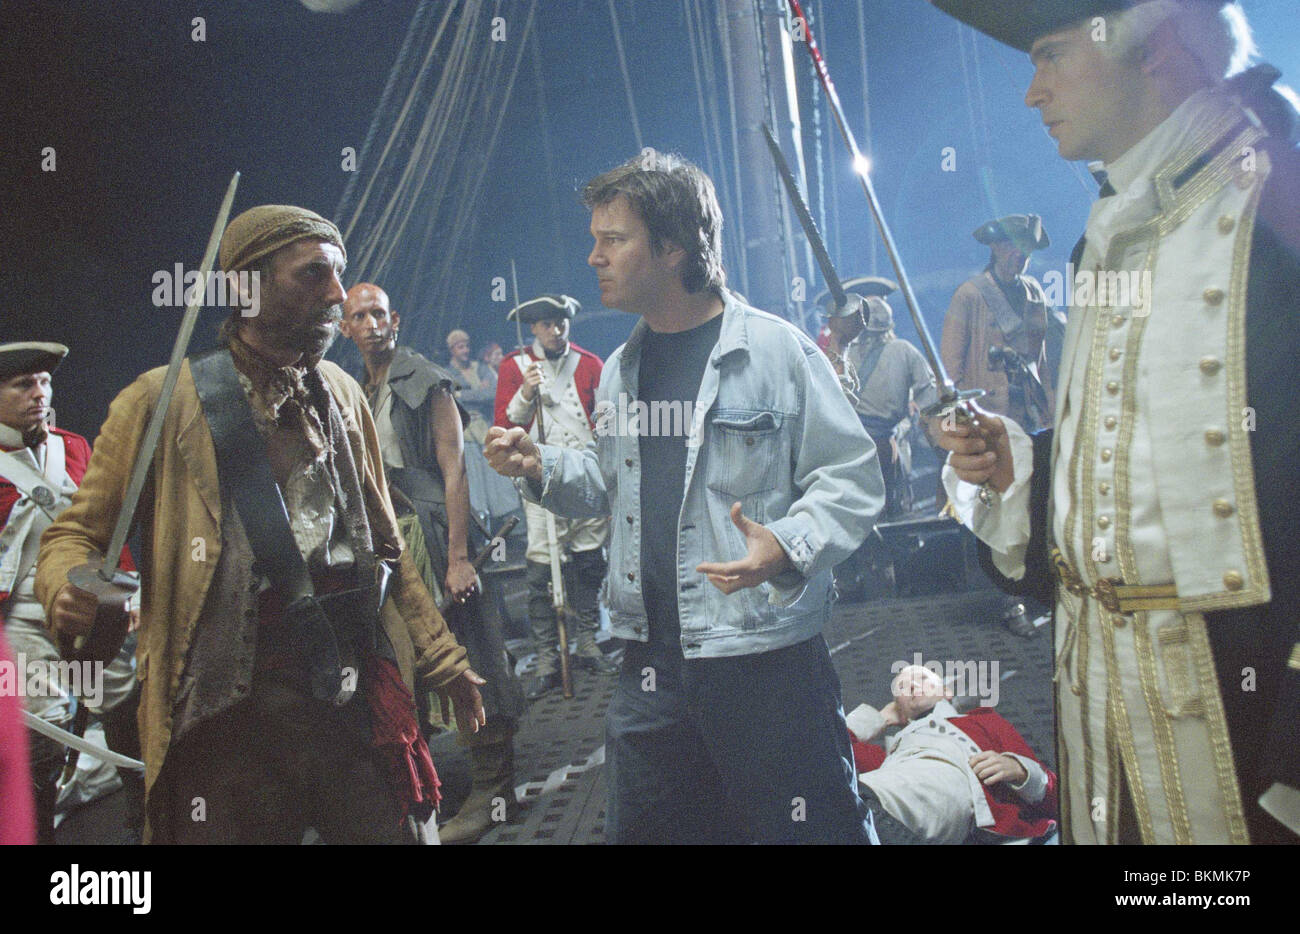 FILMING O/S 'PIRATES OF THE CARIBBEAN: THE CURSE OF THE BLACK PEARL' (2003) WITH GORE VERBINSKI (DIR), JACK - Stock Image